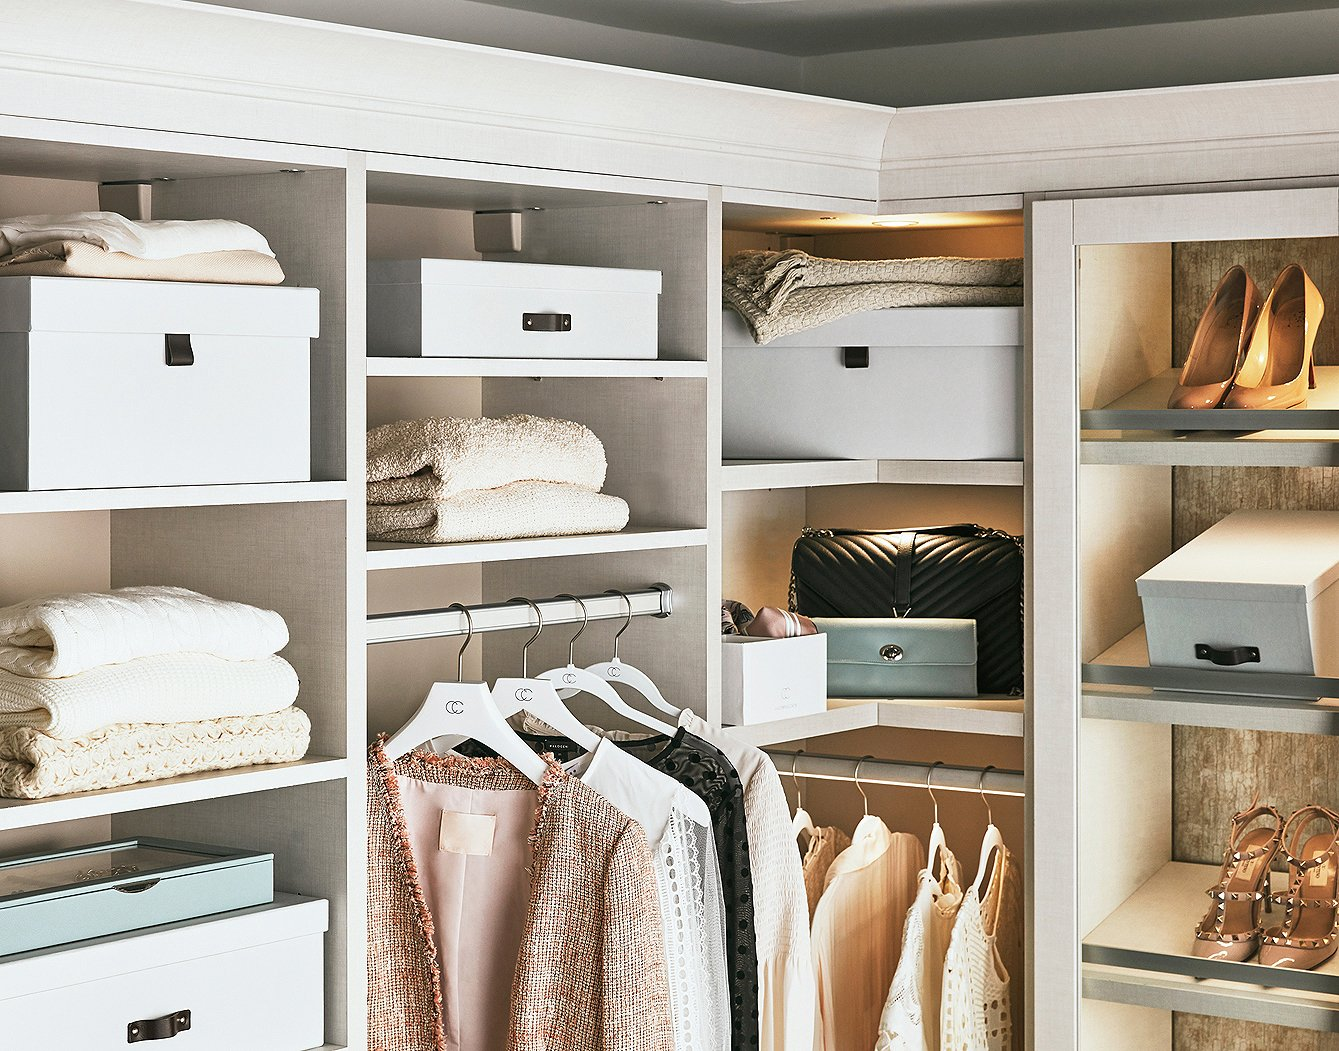 Shop closet essentials